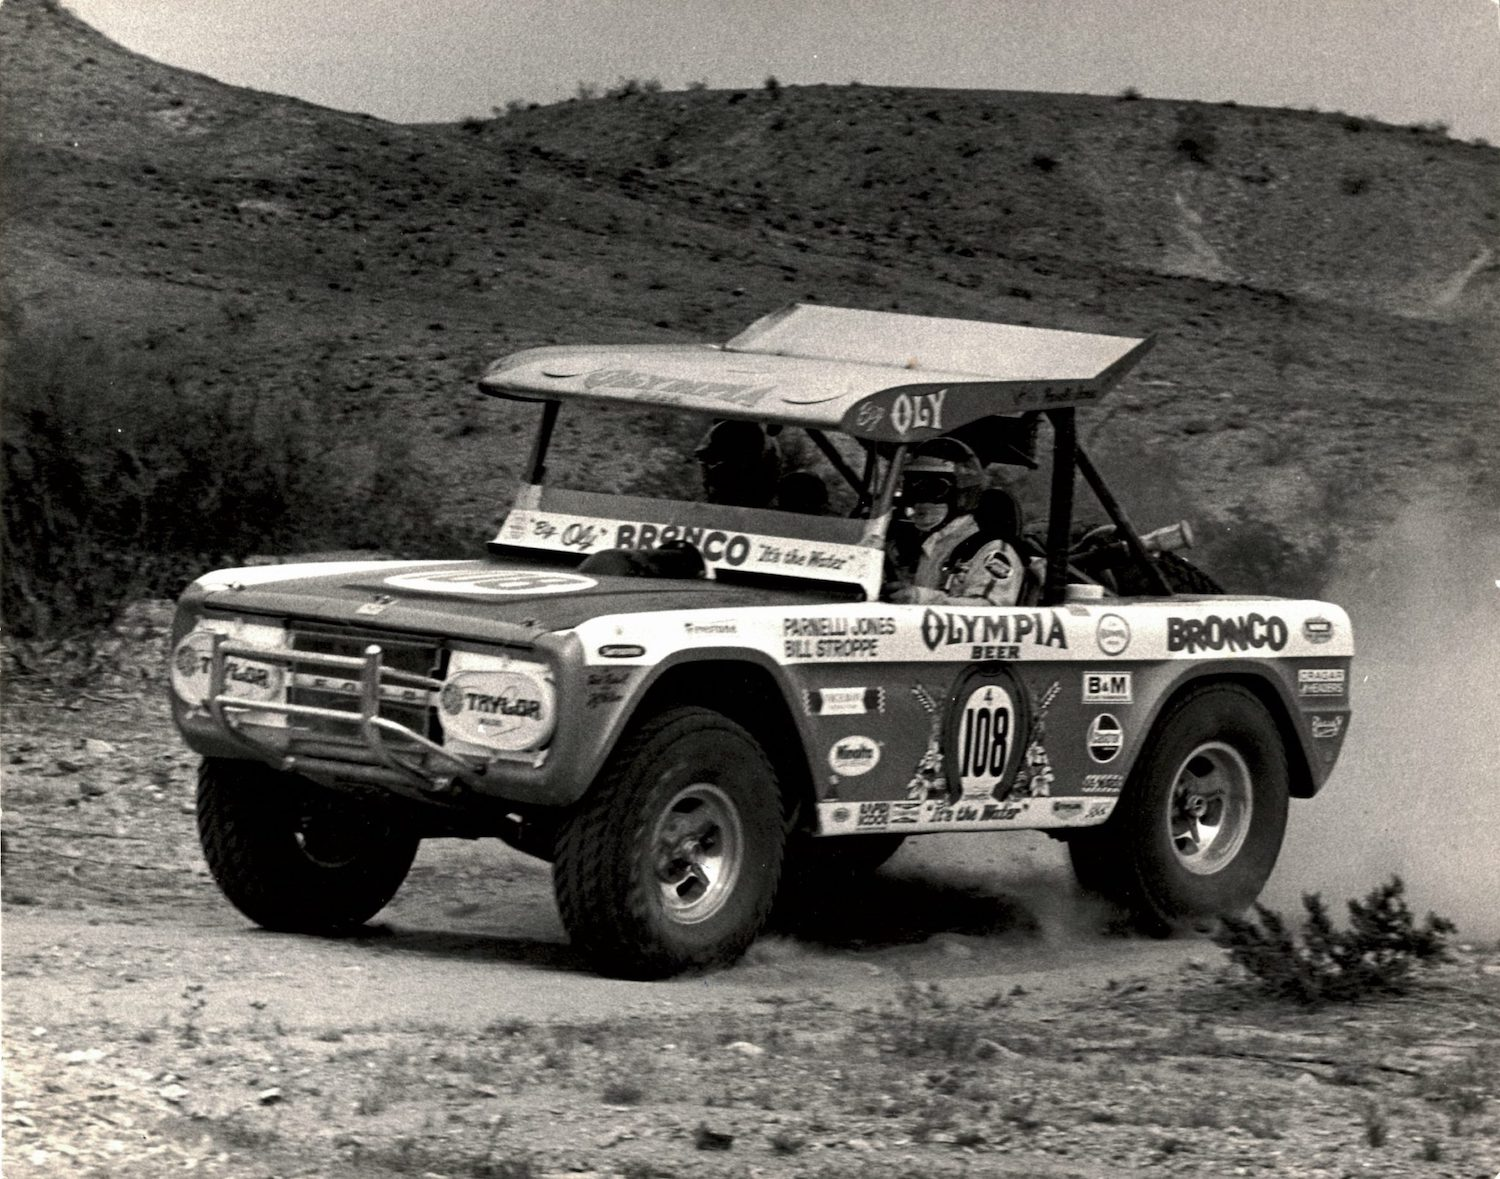 Parnelli_Jones_Bronco_Auction_Parnelli-Jones-and-Bill-Stroppe-captured-the-1973-Mint-400-in-Big-Oly-scaled-e1616088184131-2048x1610